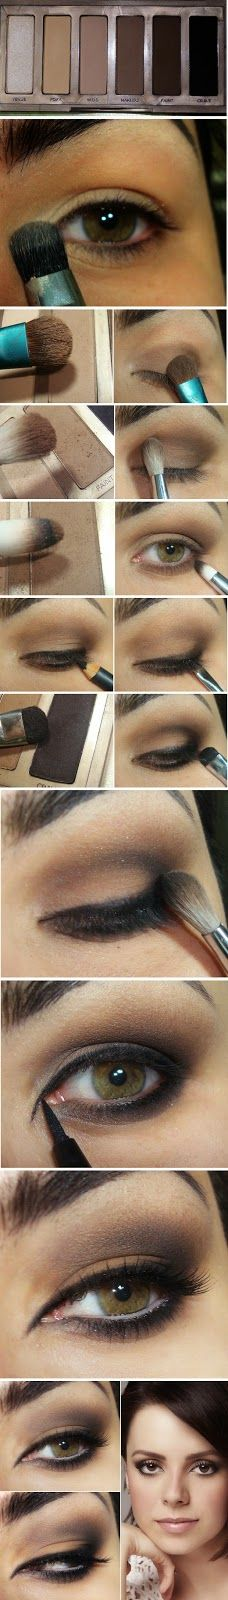 Neutral Inspired Makeup Tutorials - Step by Step / LoLus Makeup Fashion http://thepageantplanet.com/category/hair-and-makeup/